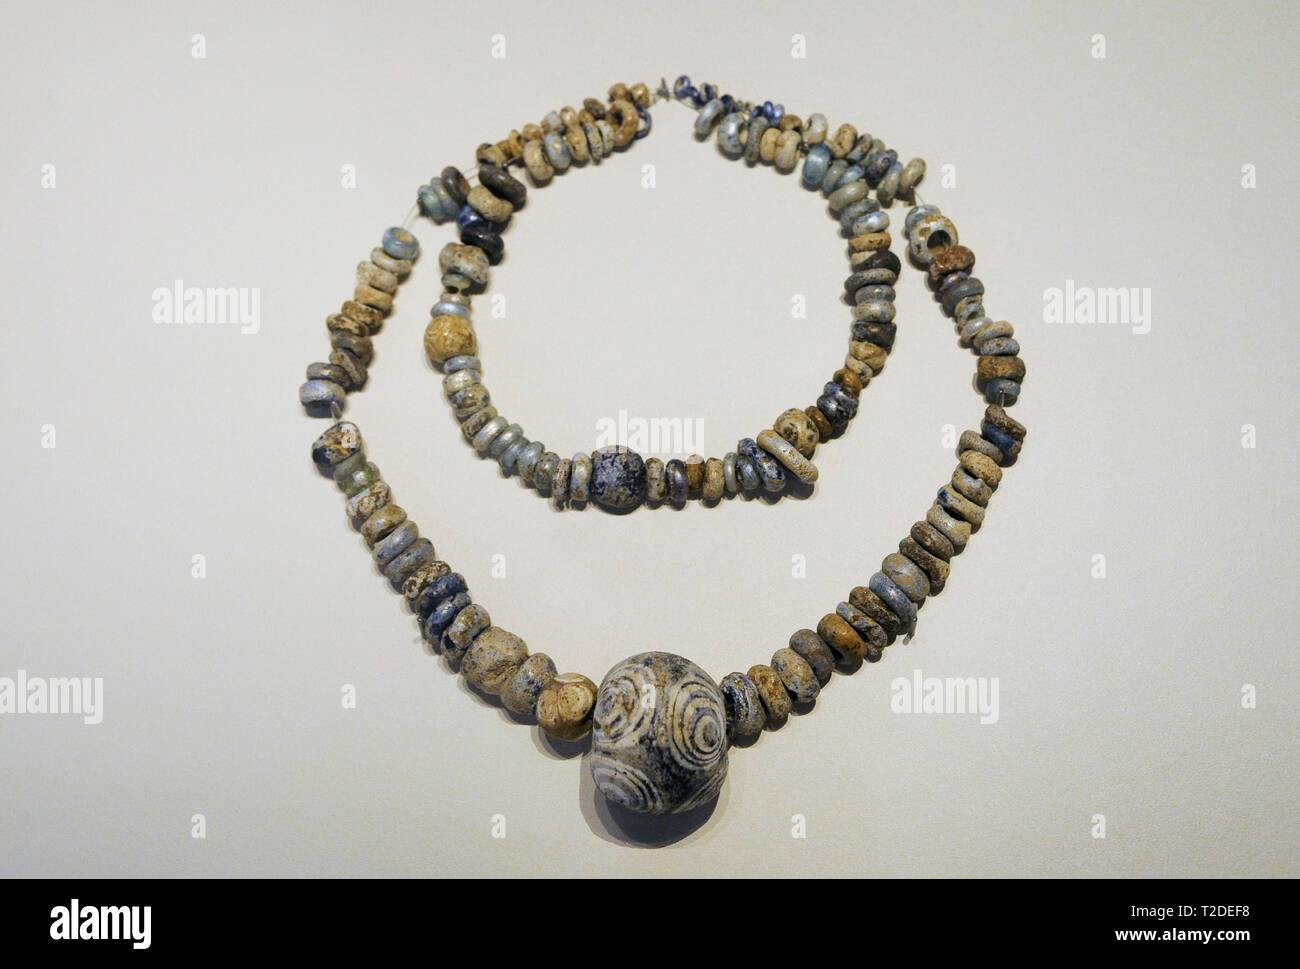 Necklace. 5th-2nd centuries BC. Post-Talayotic culture. Vitreous paste. From Massana Cave (Campanet, Majorca, Balearic Islands, Spain). National Archaeological Museum. Madrid. Spain. - Stock Image